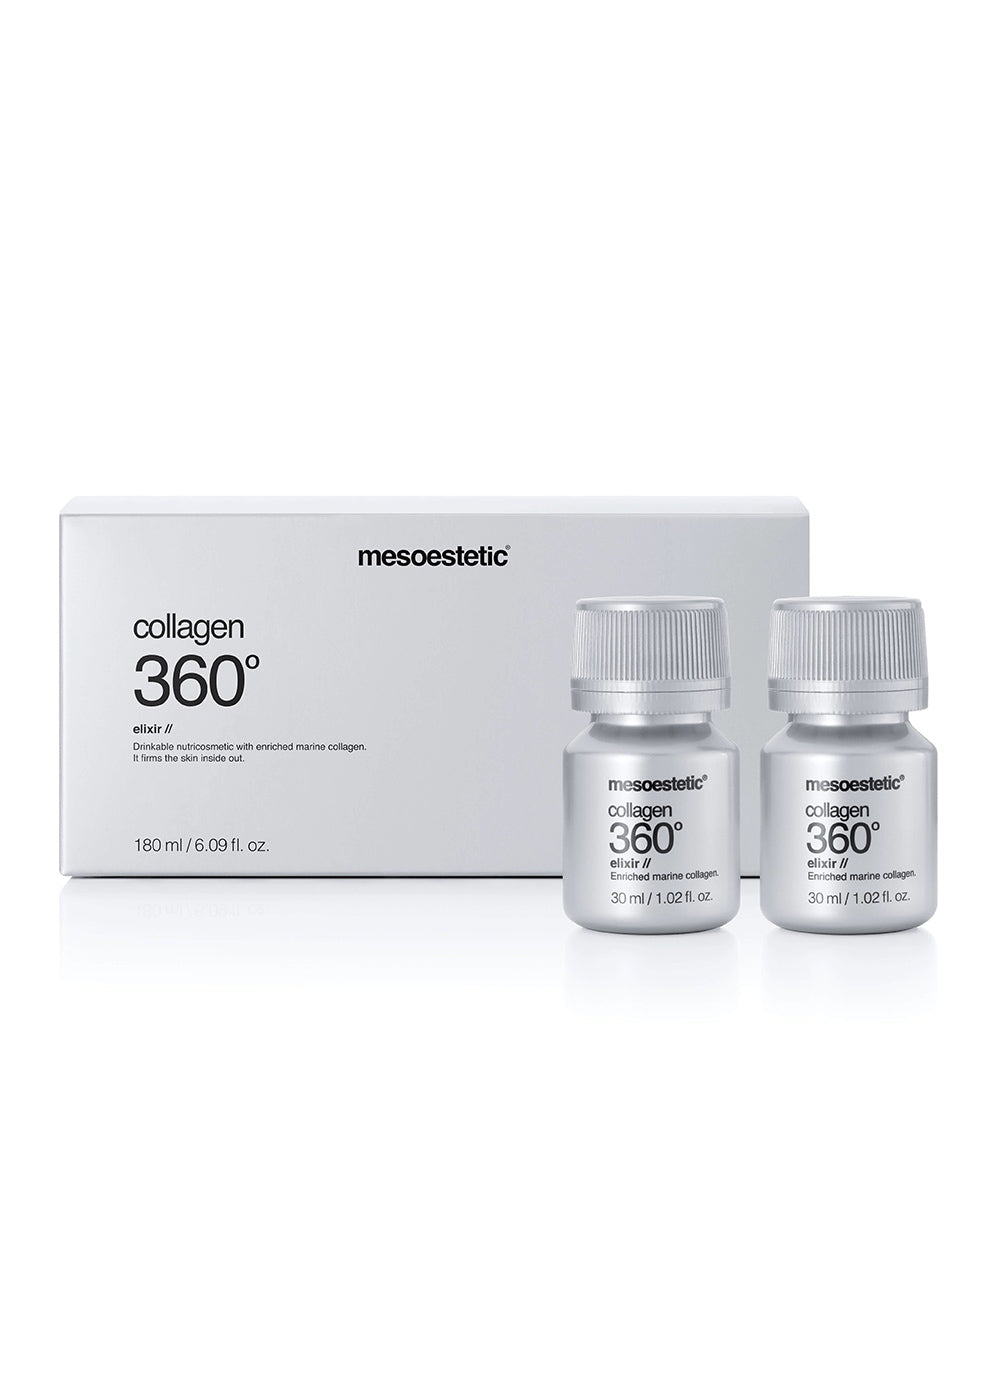 Mesoestetic Collagen 360° Elixir